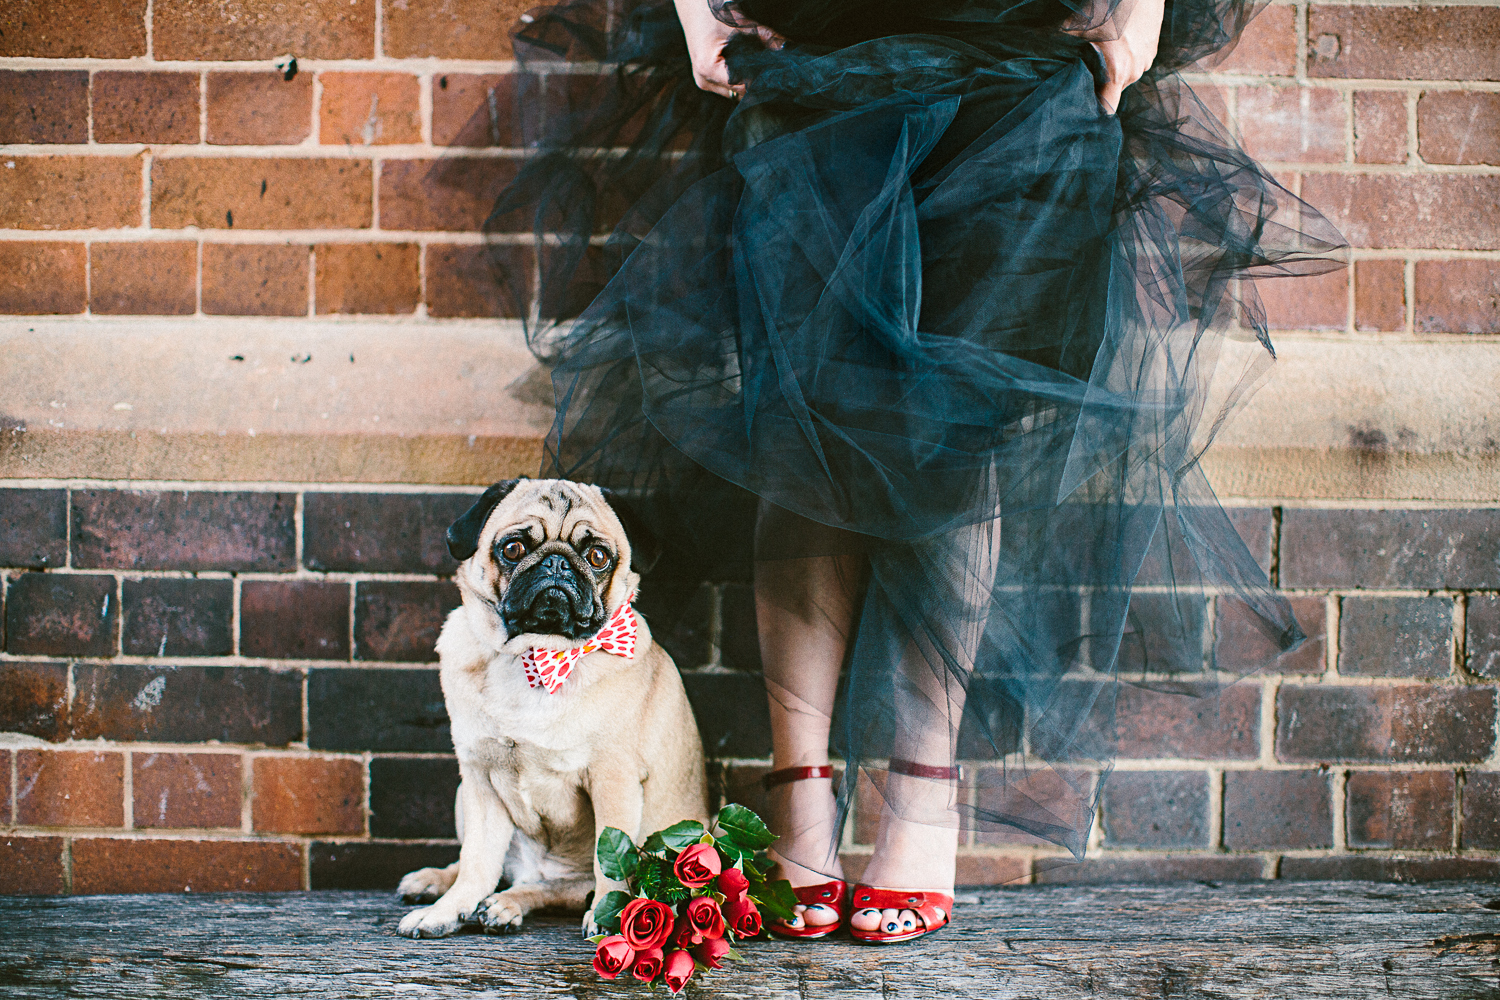 twoguineapigs_pet_photography_oh_jaffa_pugs_bow_ties_collars_REDPOLKA_1500-28.jpg